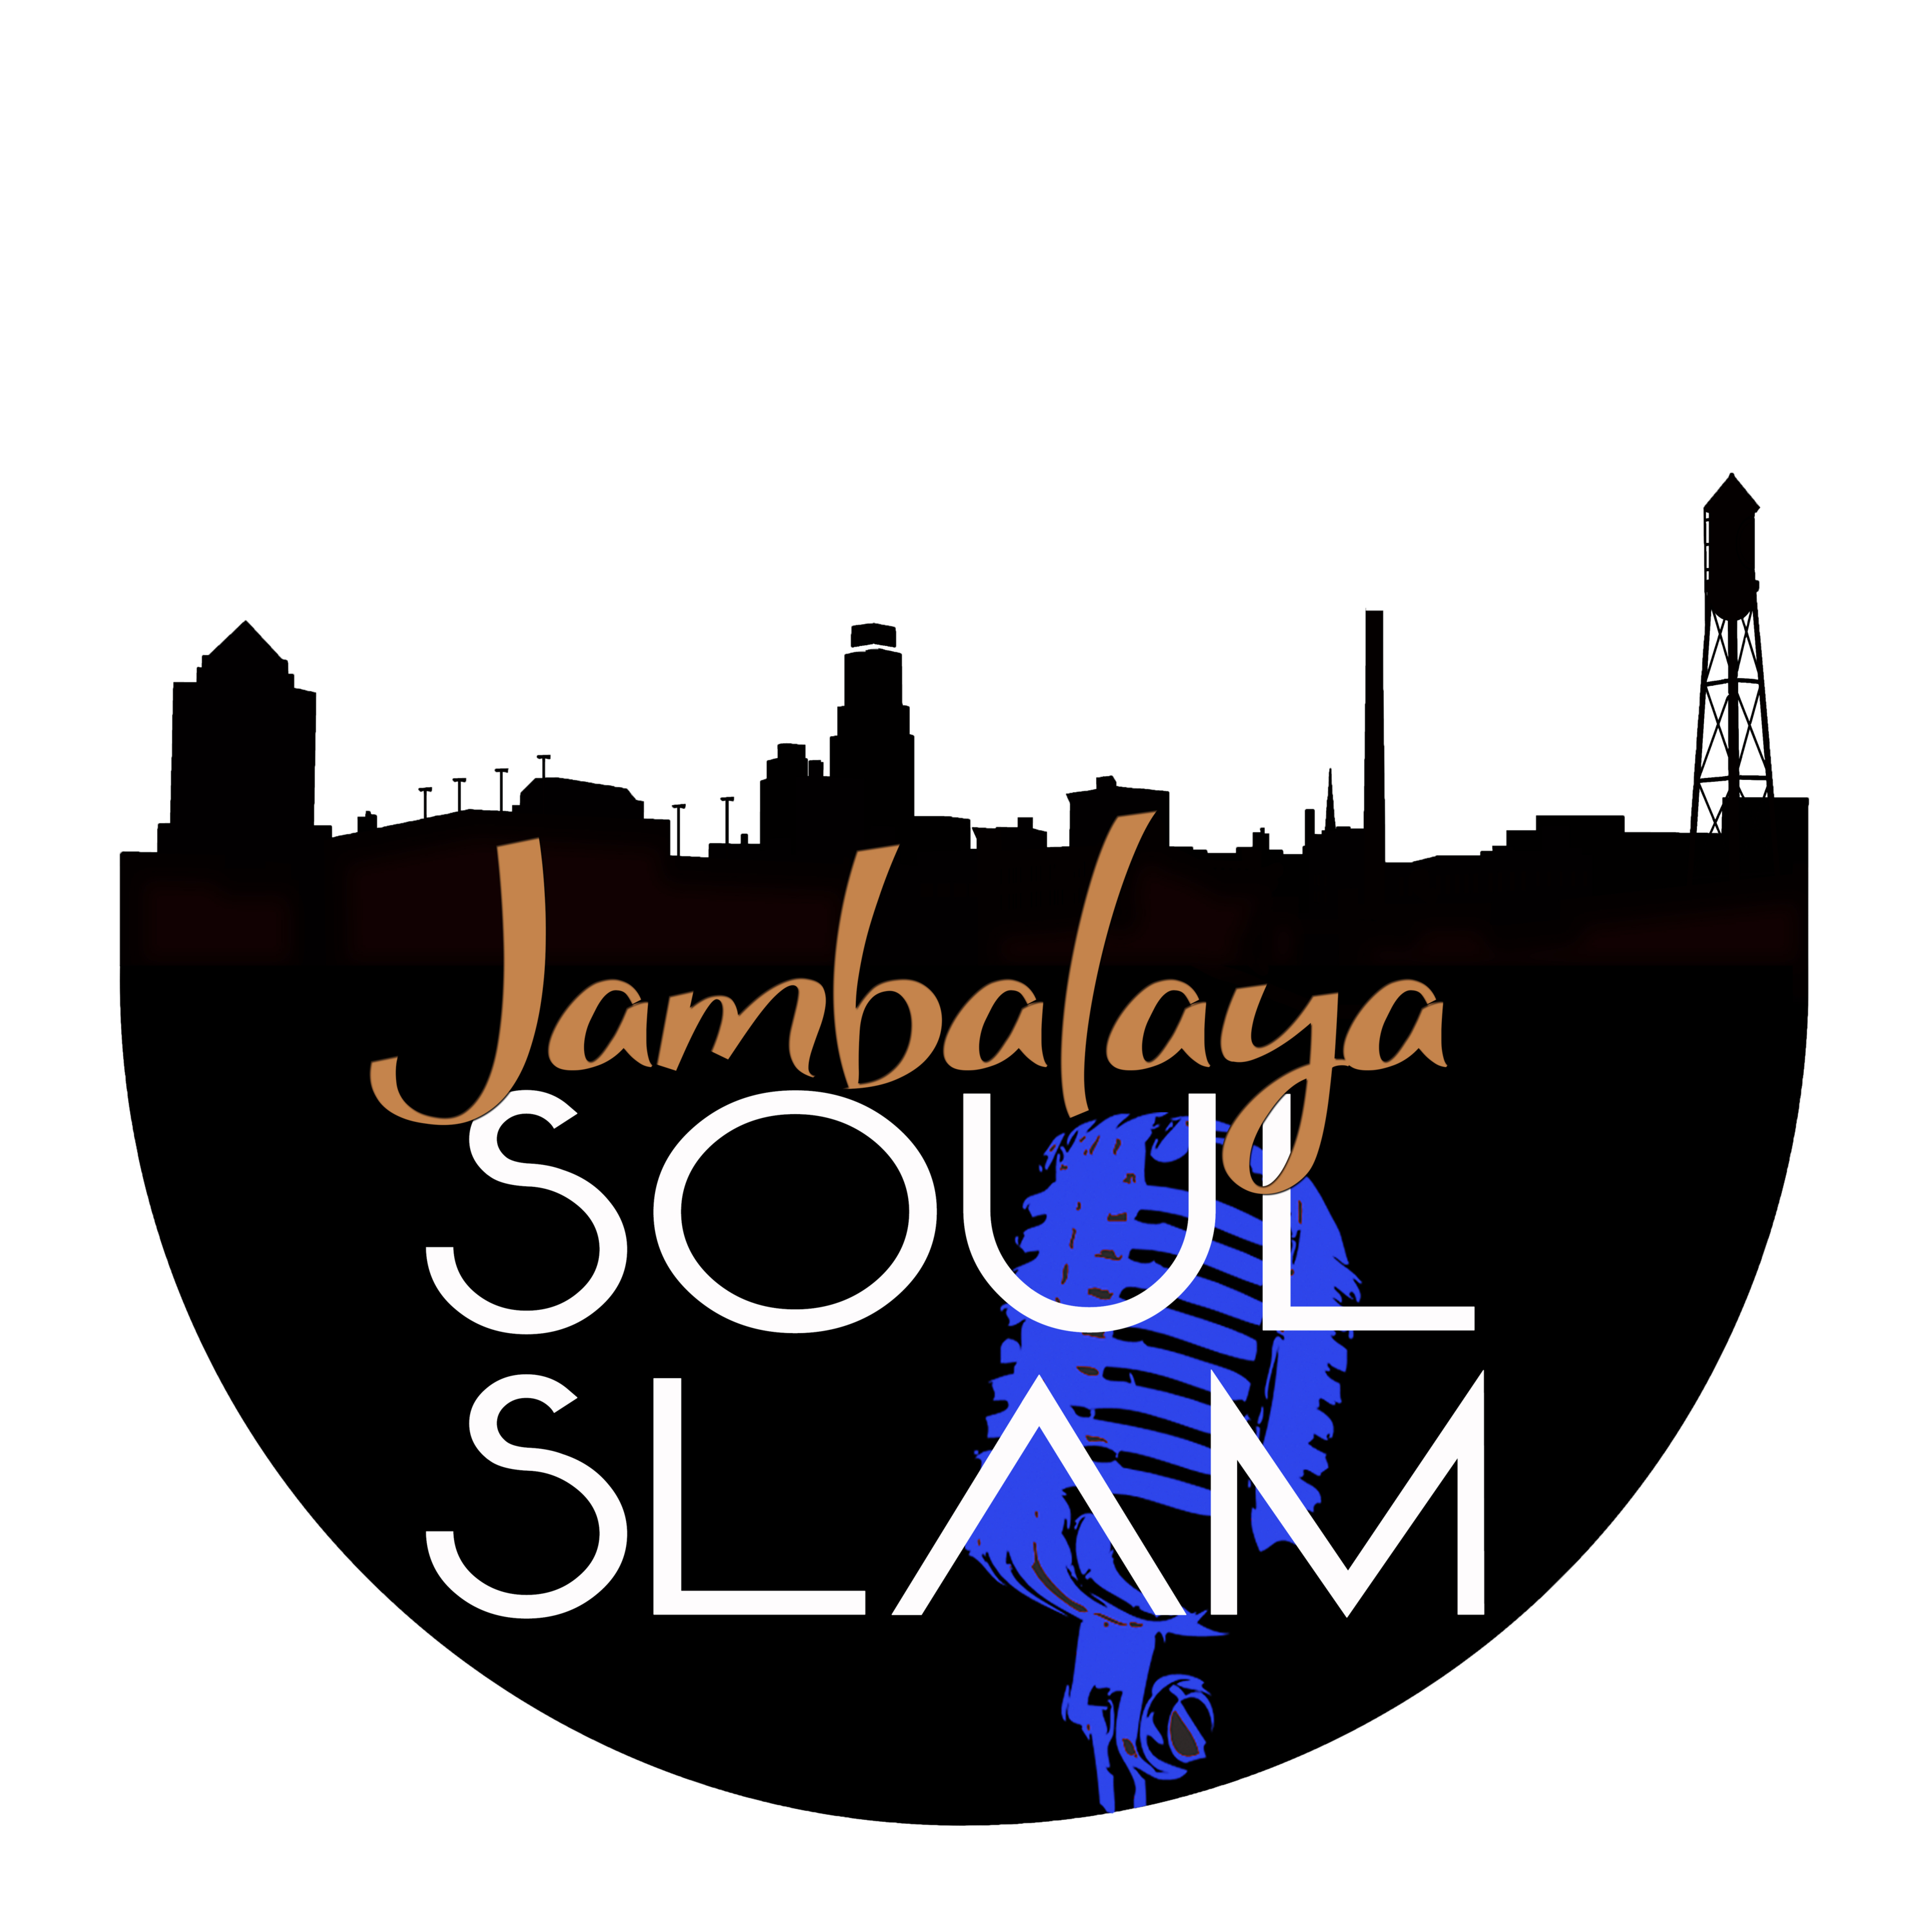 51c5bc42 In 2005, The Jambalaya Soul Slam started at the Hayti Heritage Center in  Durham and has been supported by the St. Joseph's Historic Foundation ever  since.